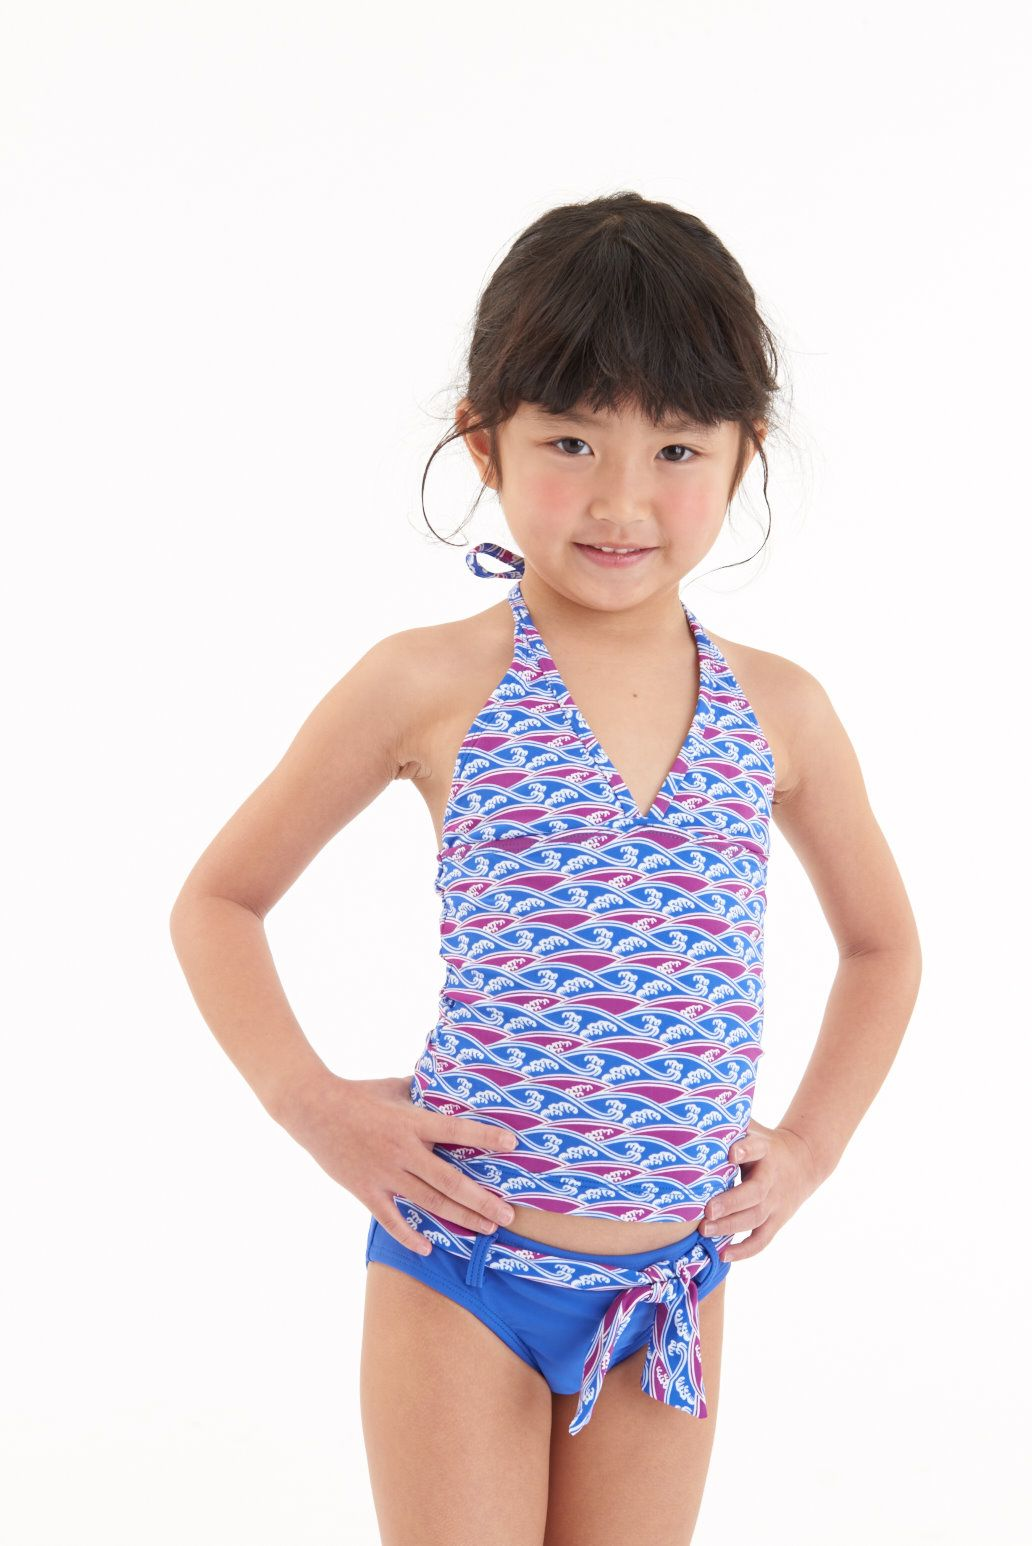 ba6f3693c54f9 Matching swimwear for boys girl and adults! Kids Tankini set in Waves  Purple print from